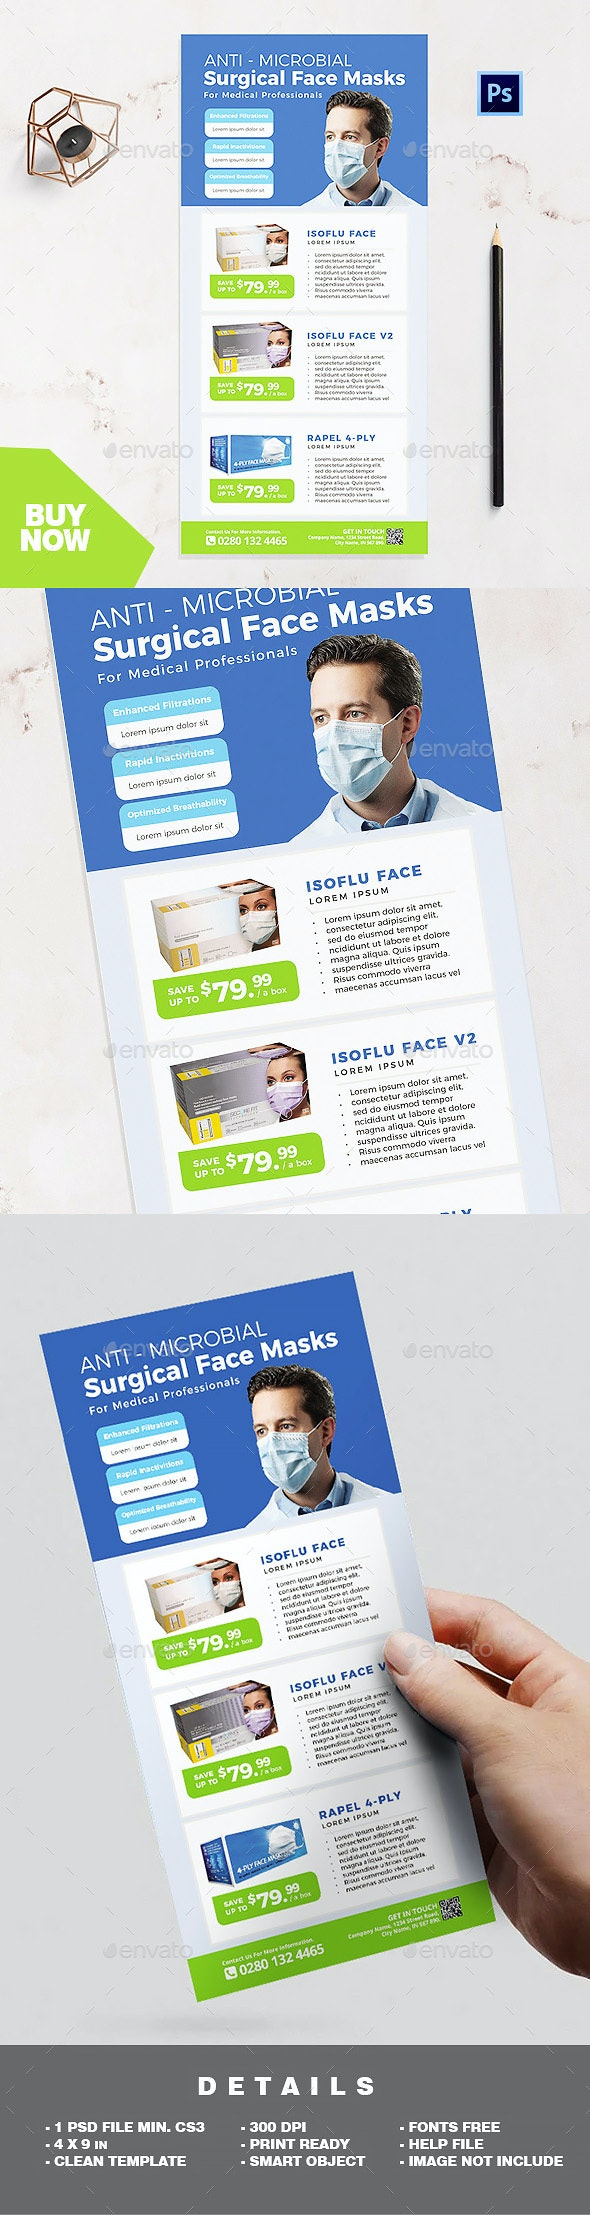 Rack Card Template - Medical Disposable Face Masks / Surgical Masks - Corporate Flyers